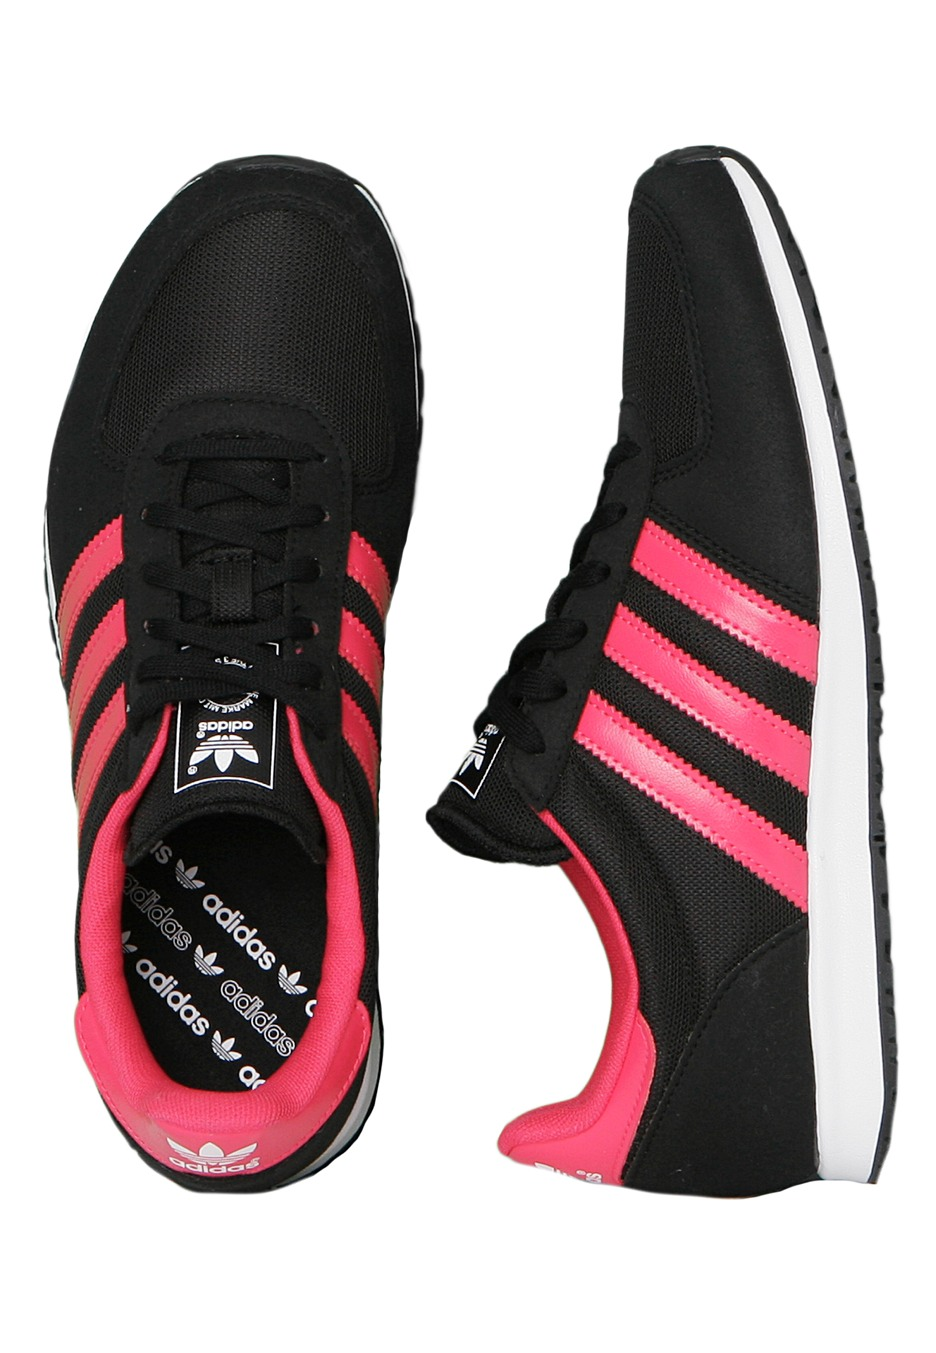 Adidas Shoes For Girls Low Cut Wallbank Lfc Co Uk